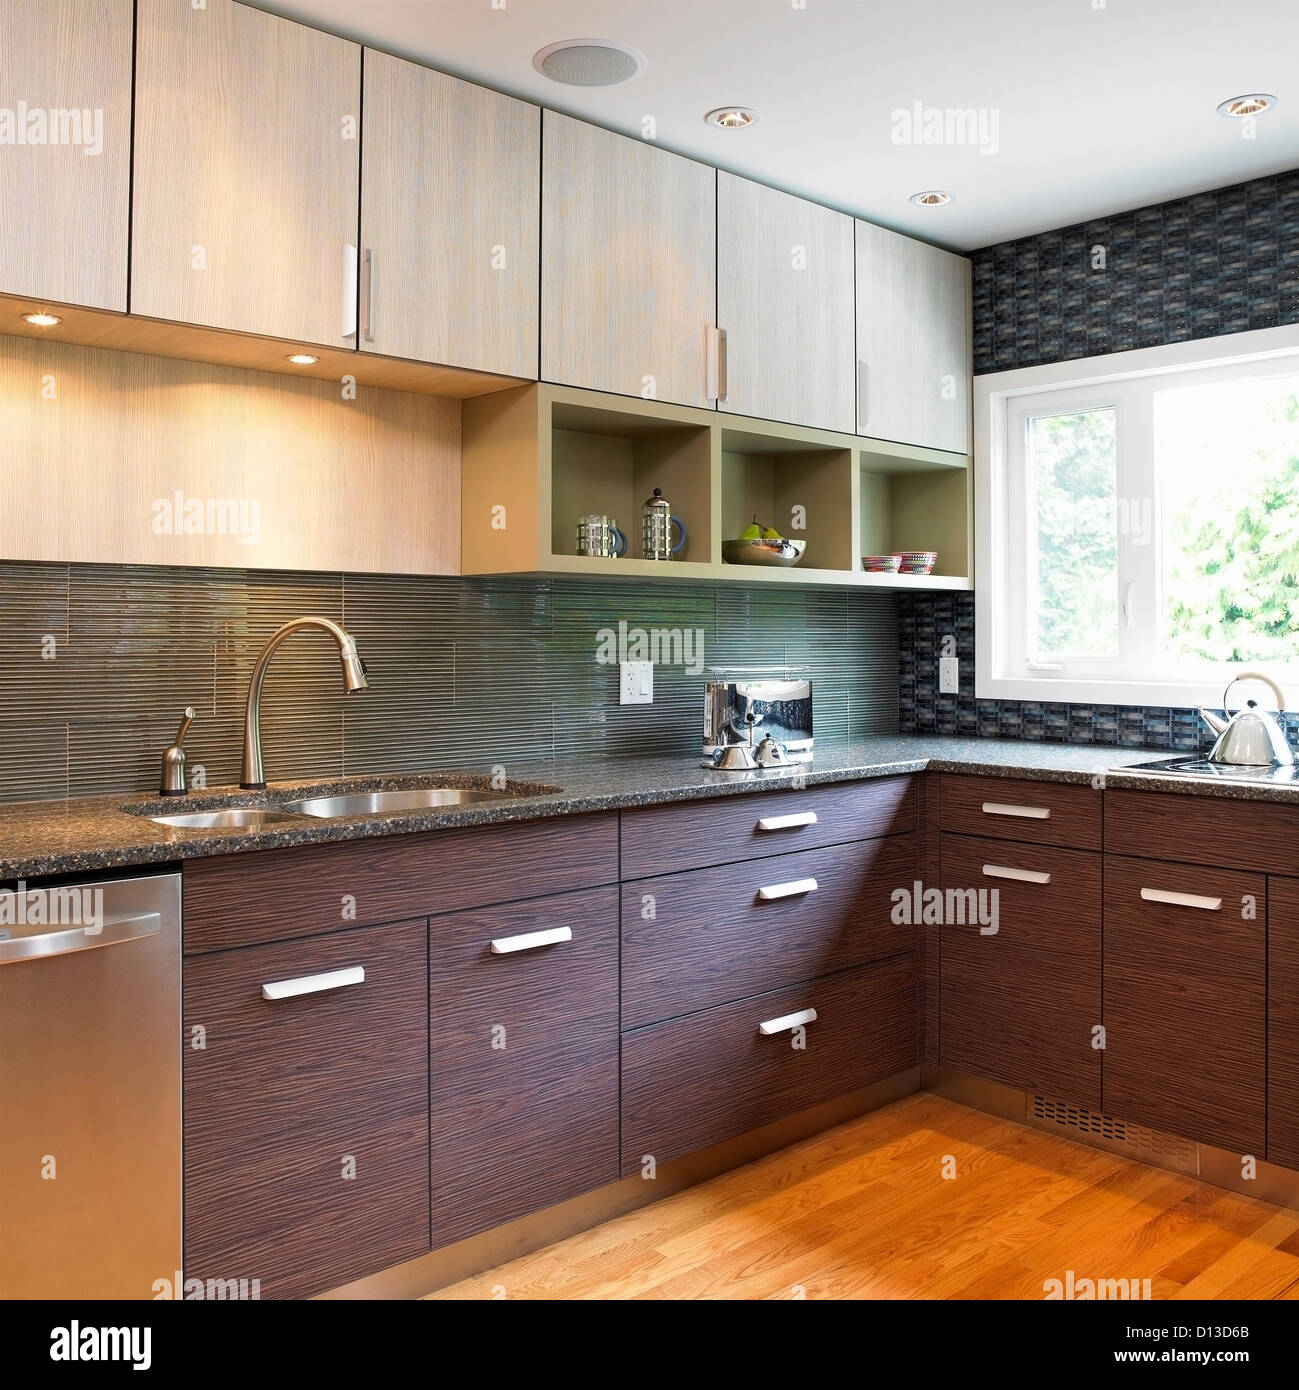 Wood Tile Kitchen Backsplash: Kitchen With Blue Tile Backsplash And Wood Laminate